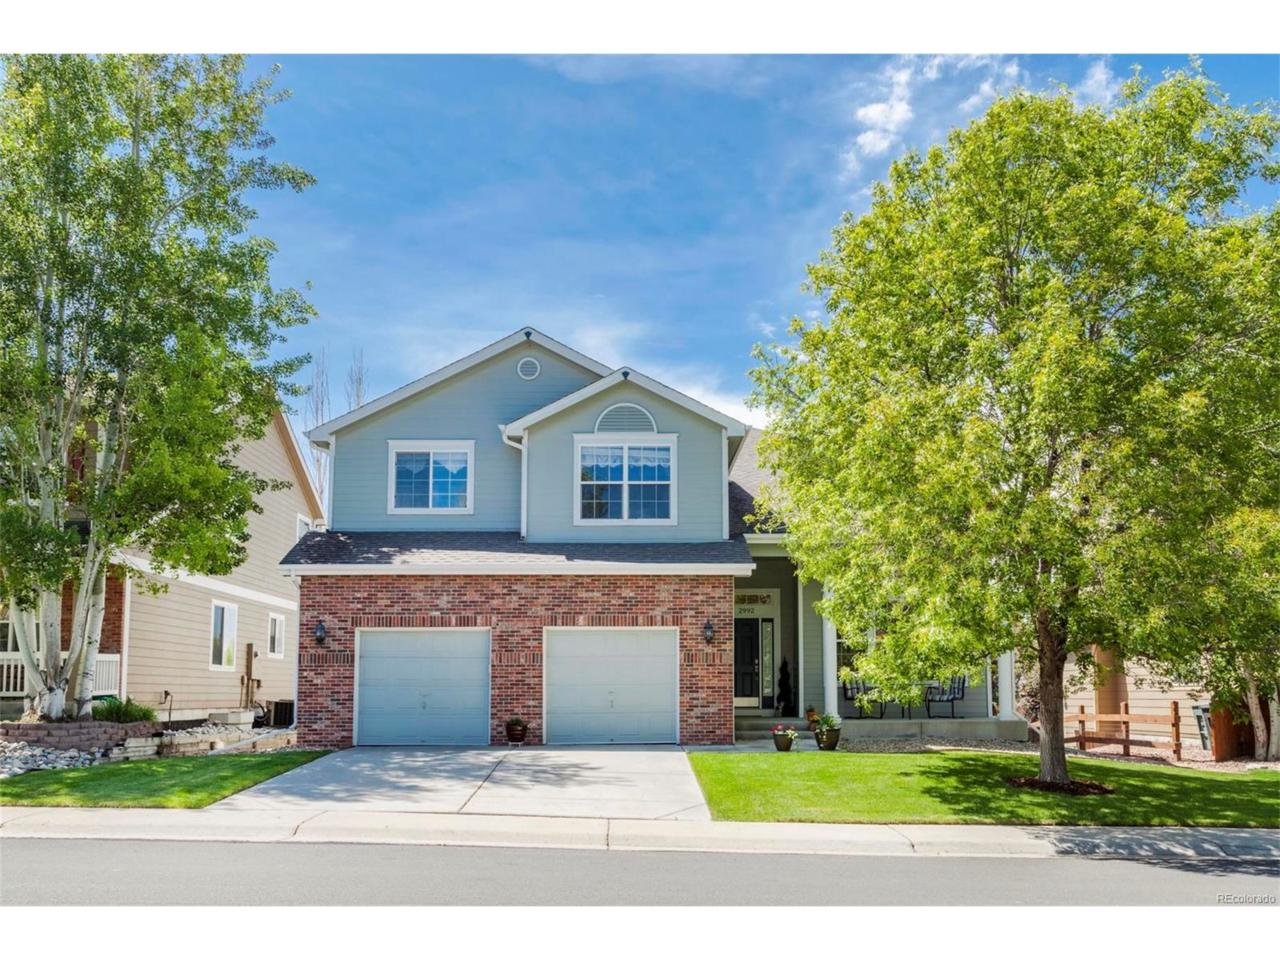 2992 E 135th Place, Thornton, CO 80241 (MLS #8492738) :: 8z Real Estate